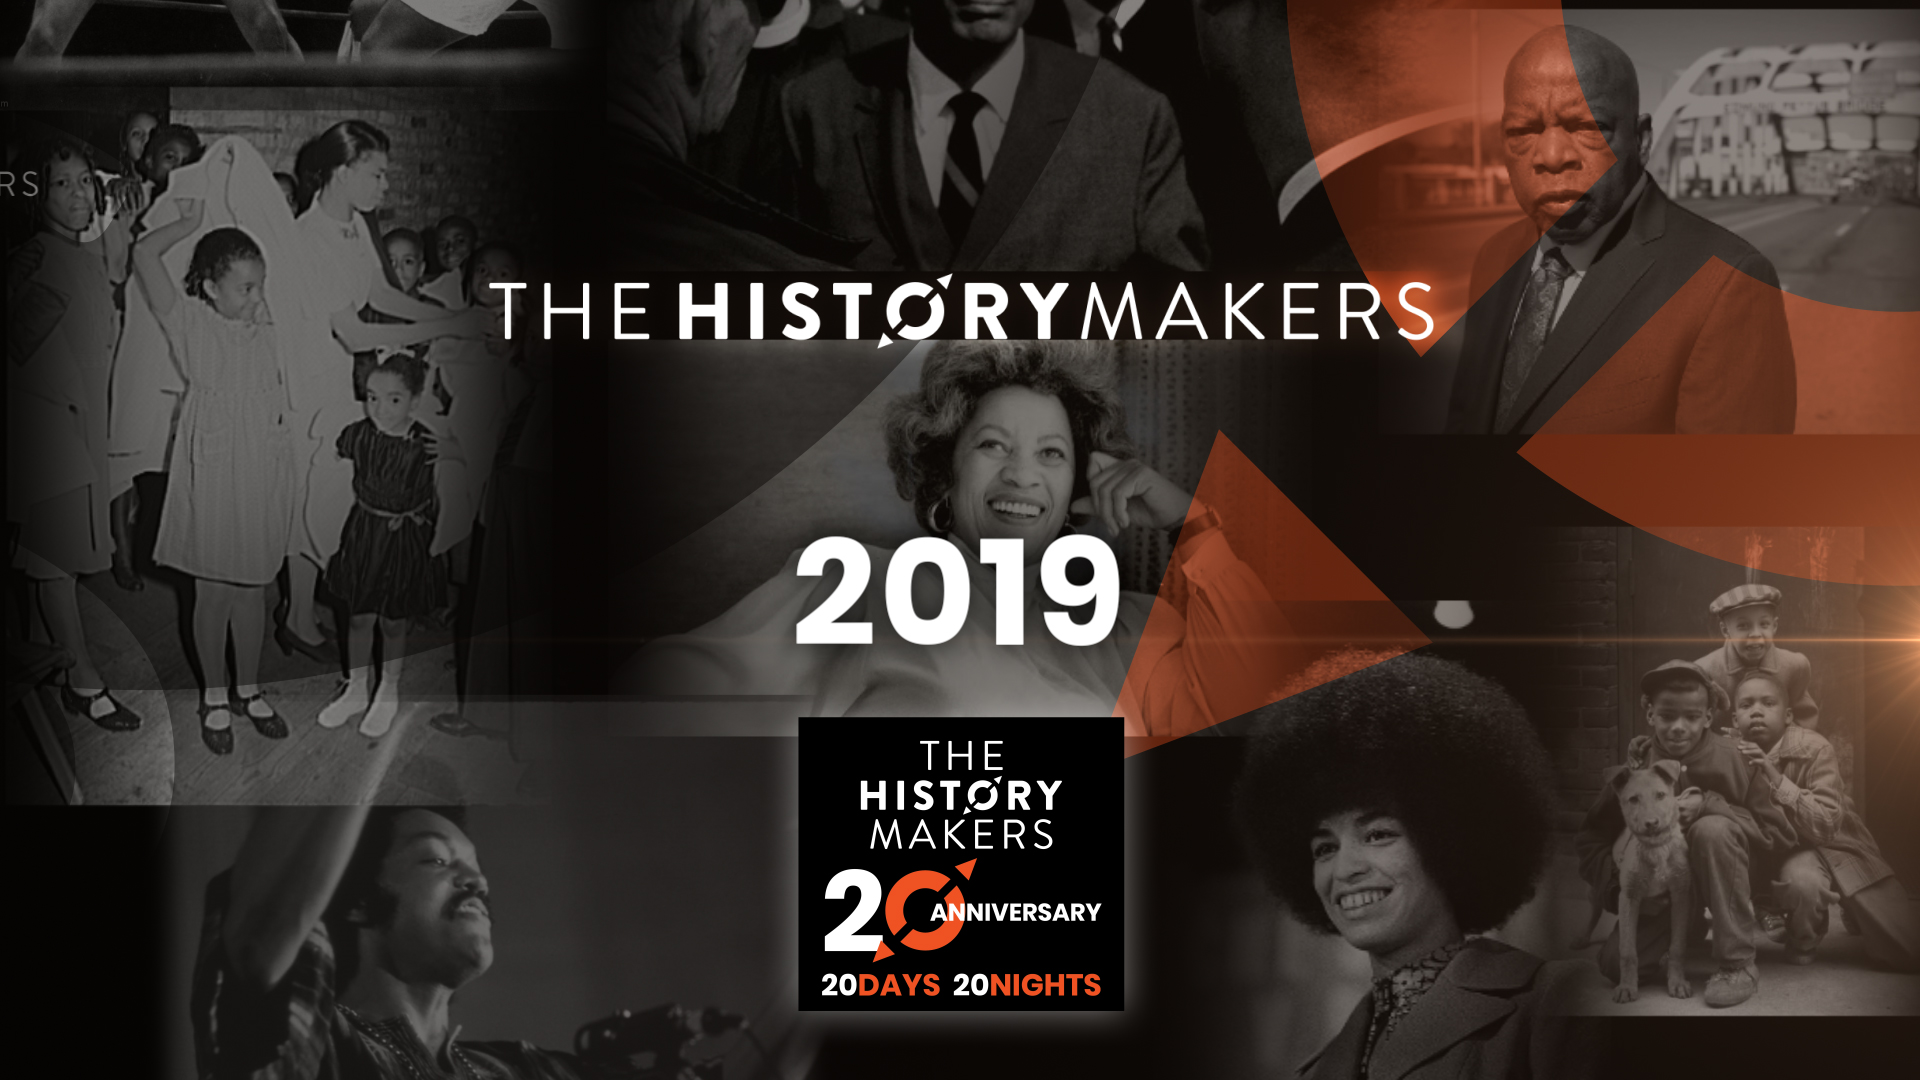 The HistoryMakers 2019 graphic